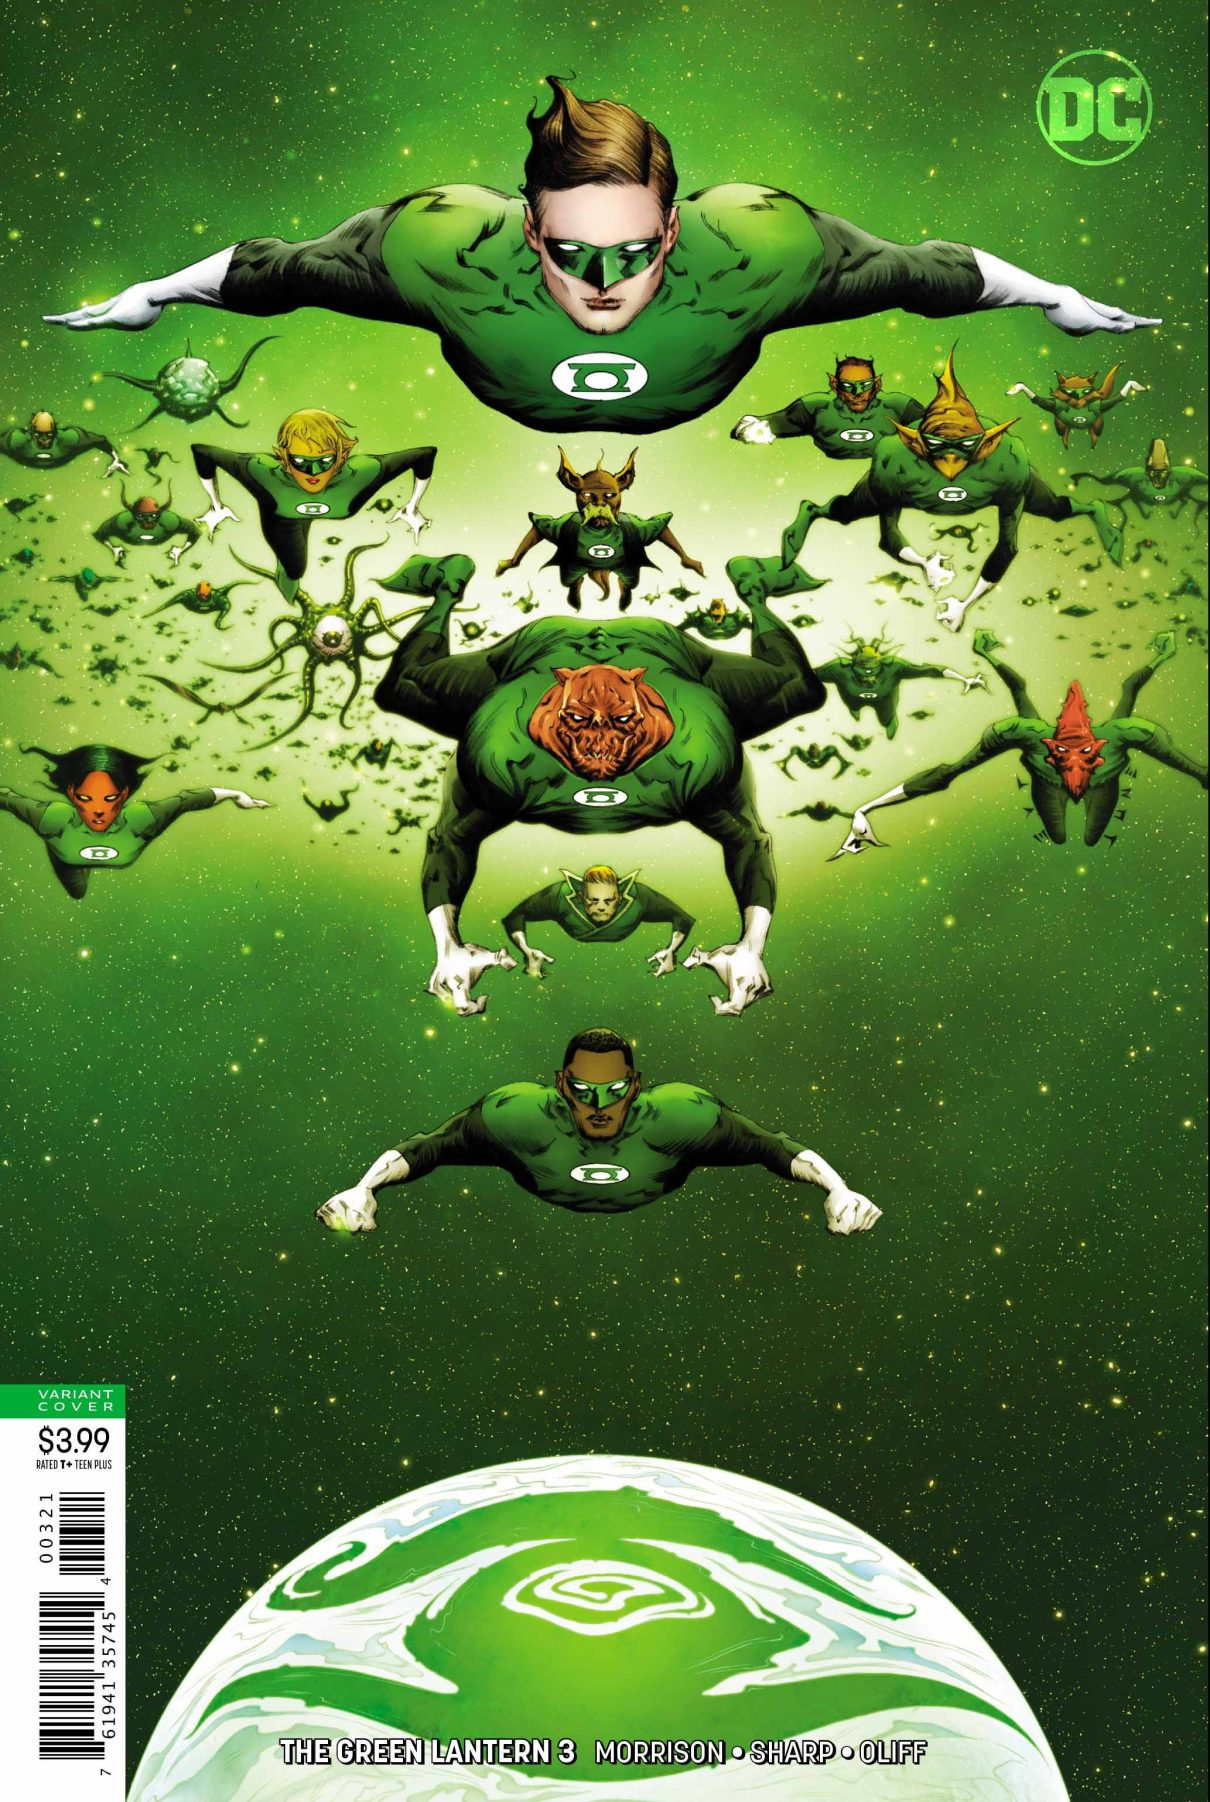 Green Lantern Corps in Morrison and Liam Sharps run